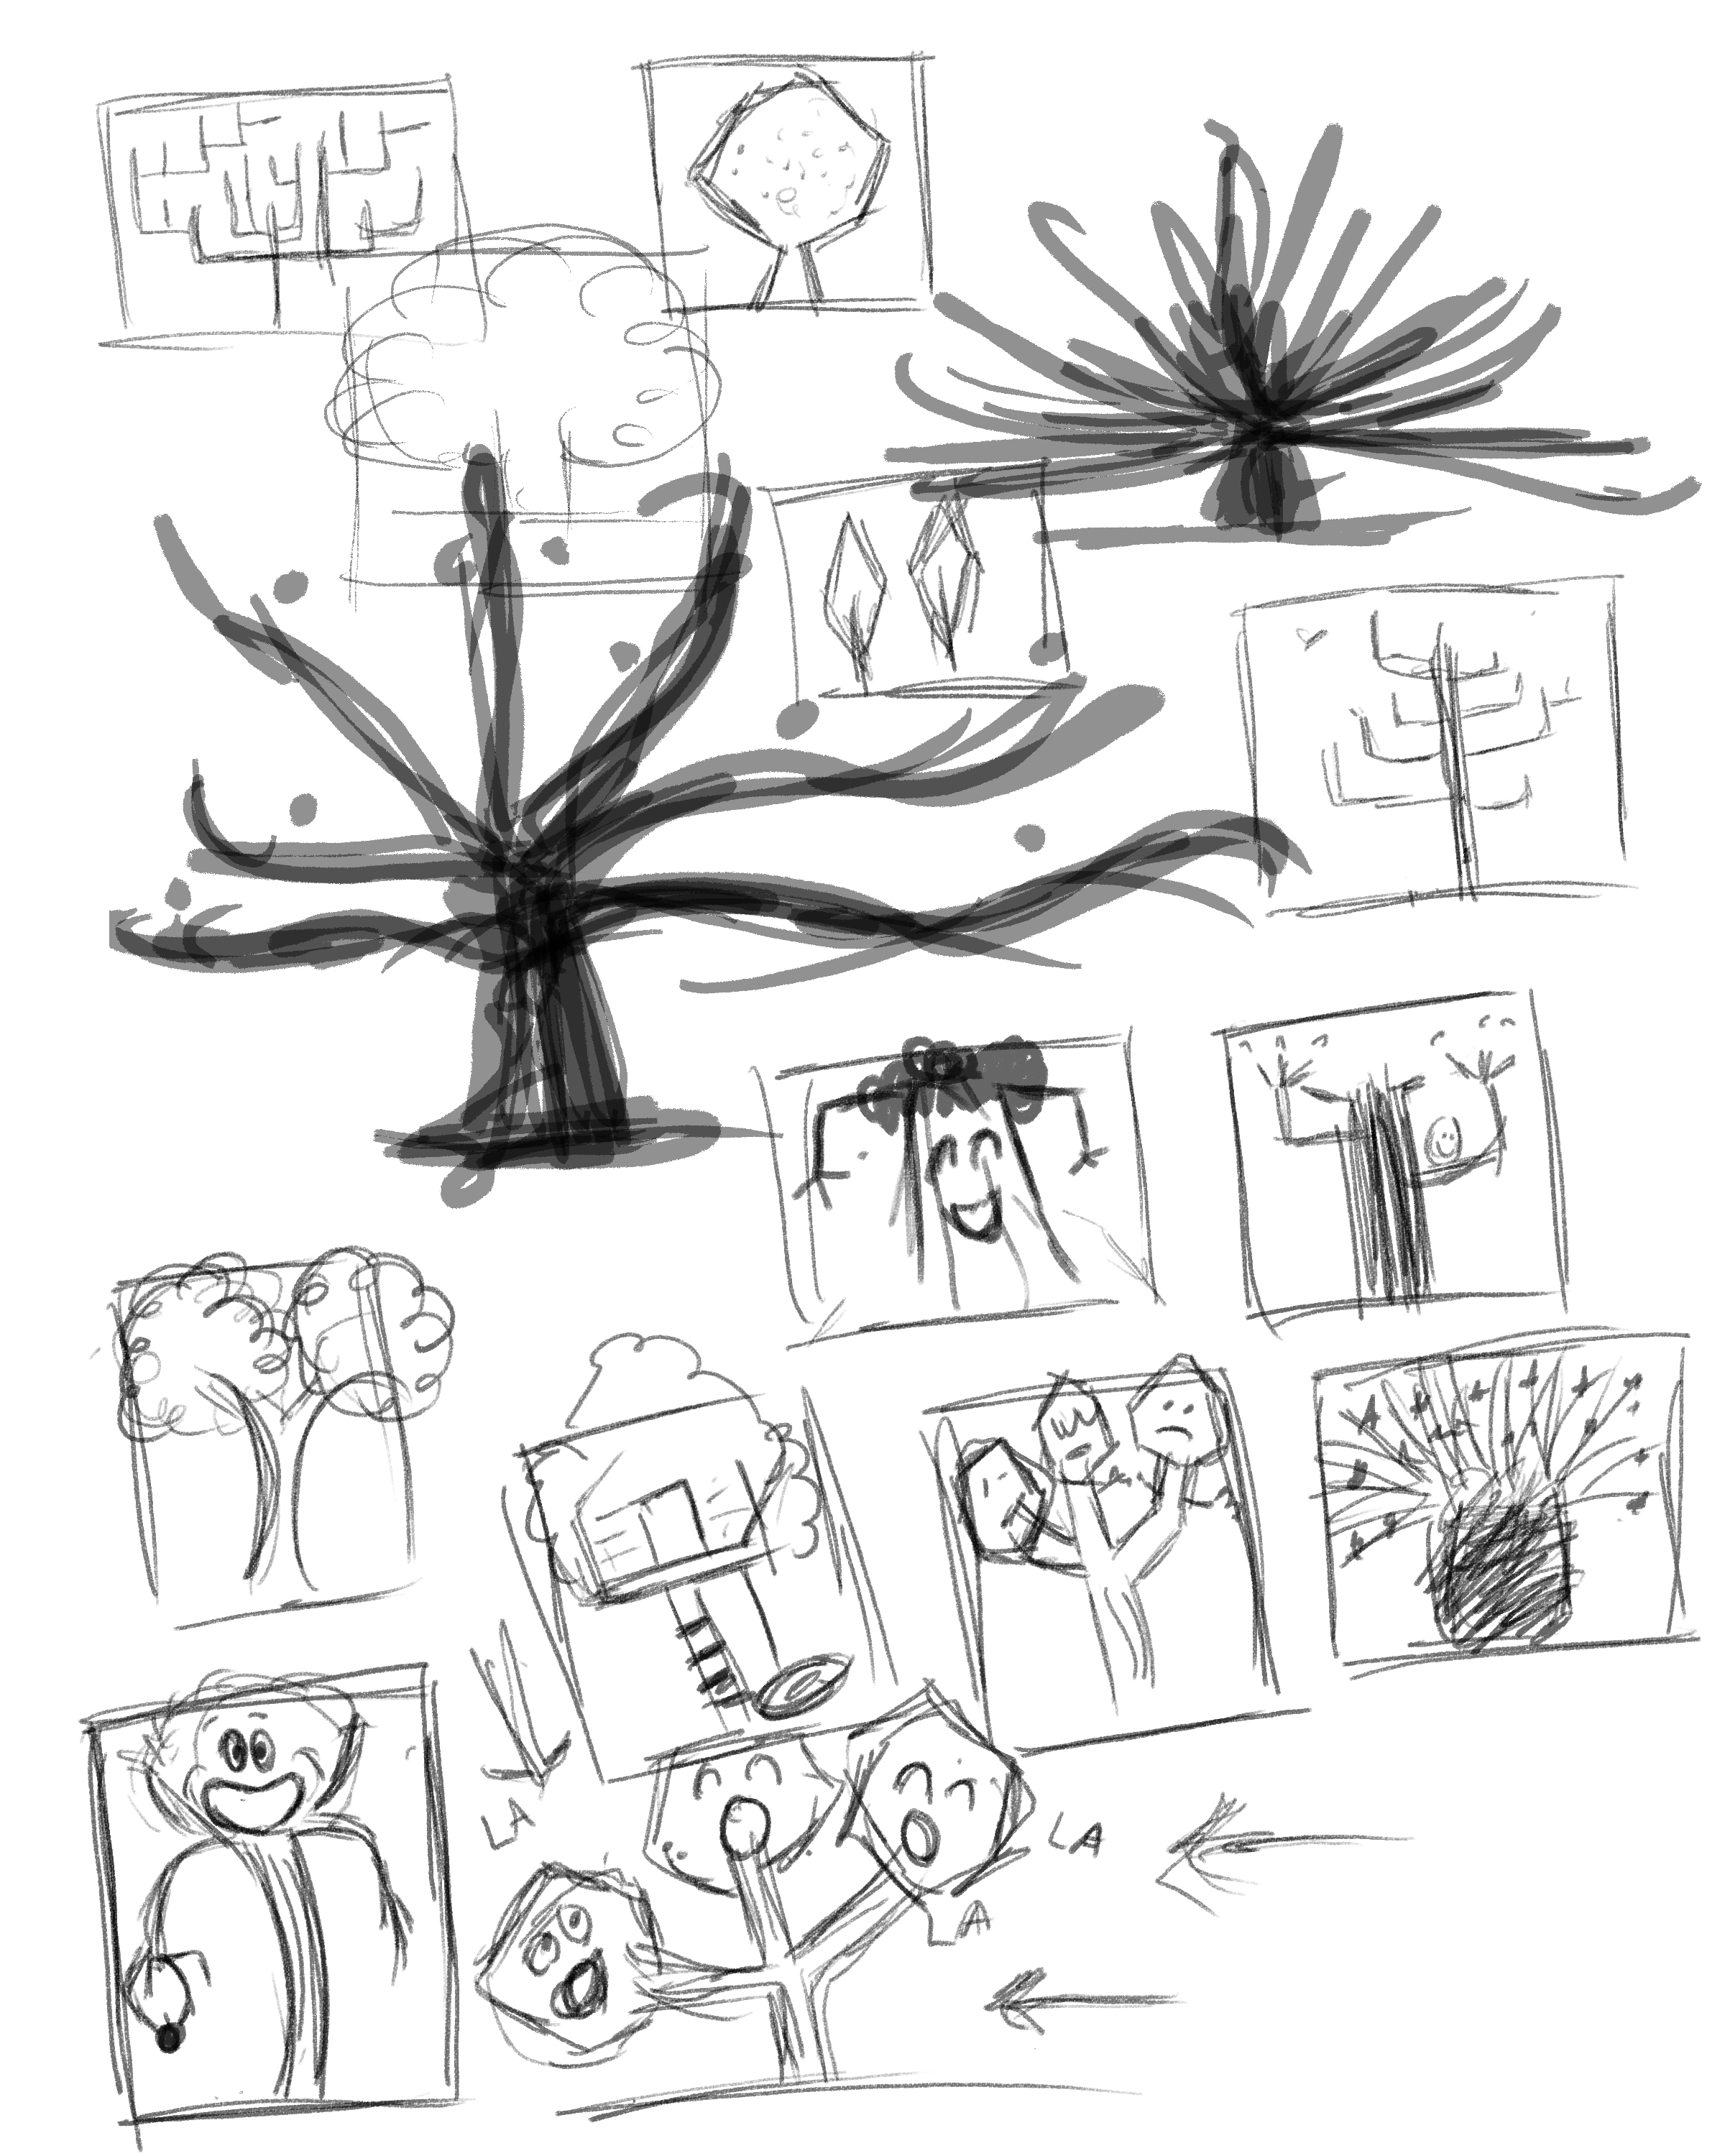 First messy sketches and thumbnails - I was really trying to get them to experiment a lot with their trees.